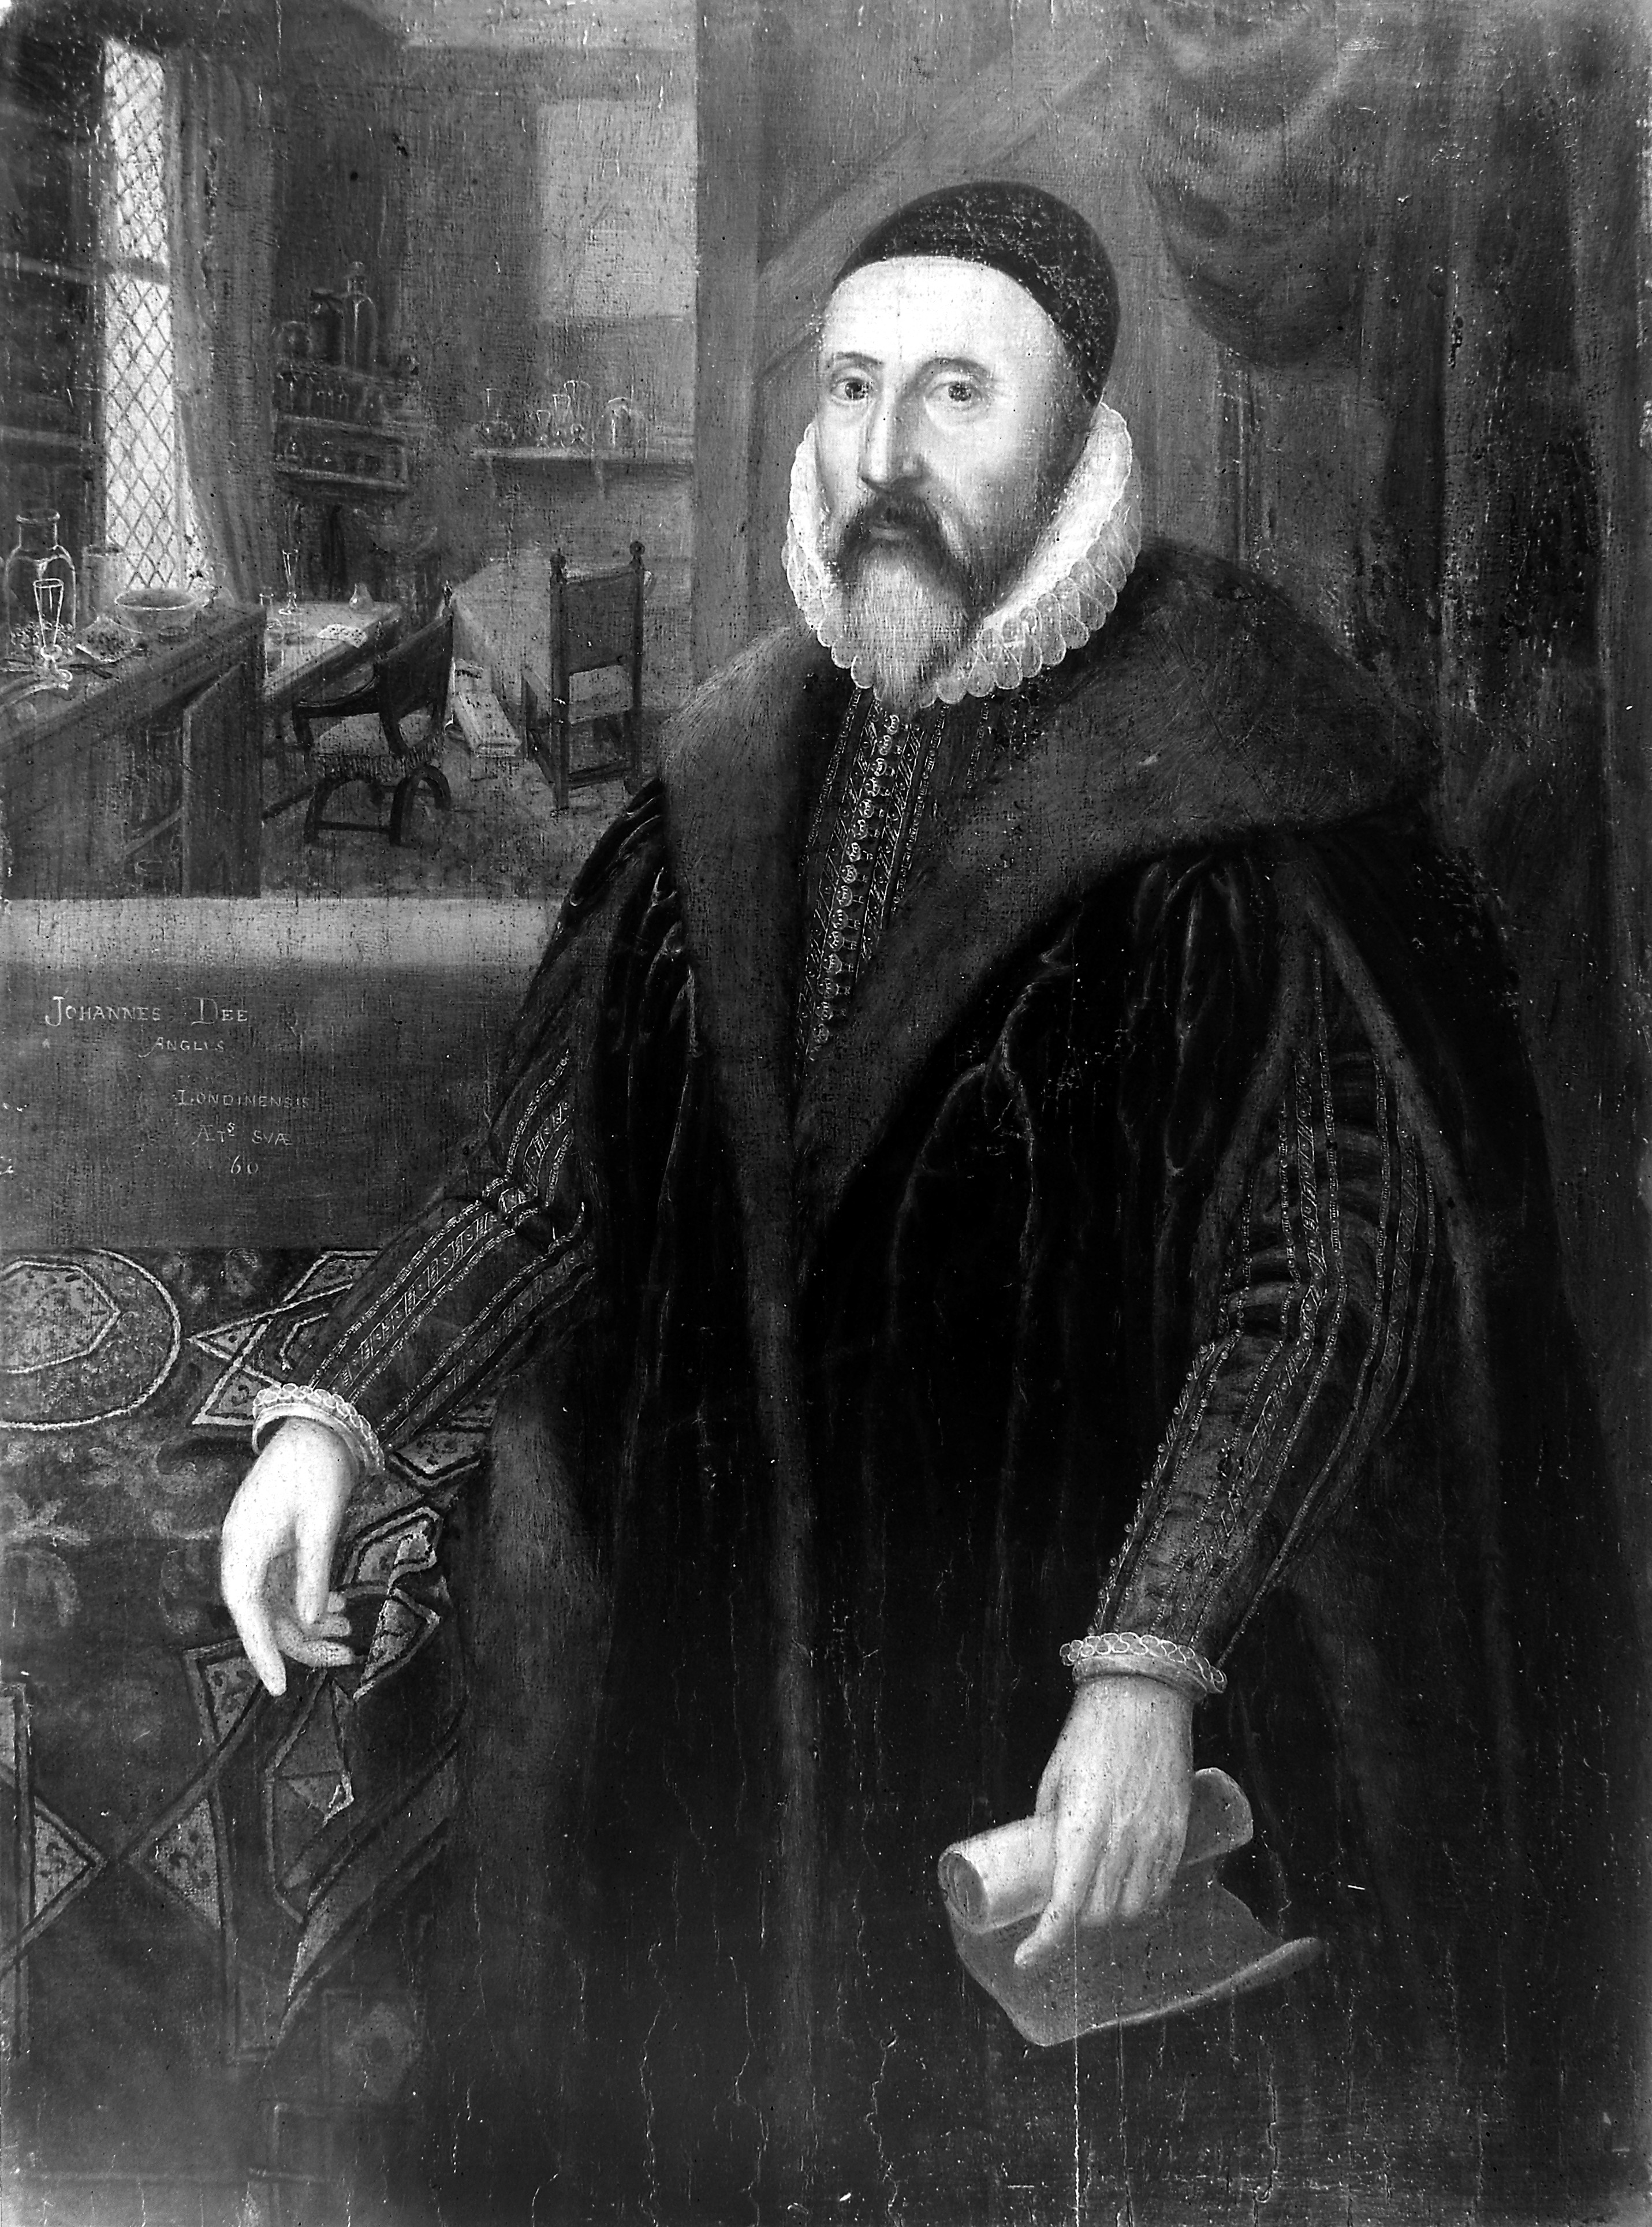 portrait_of_john_dee_wellcome_m0014534.jpg